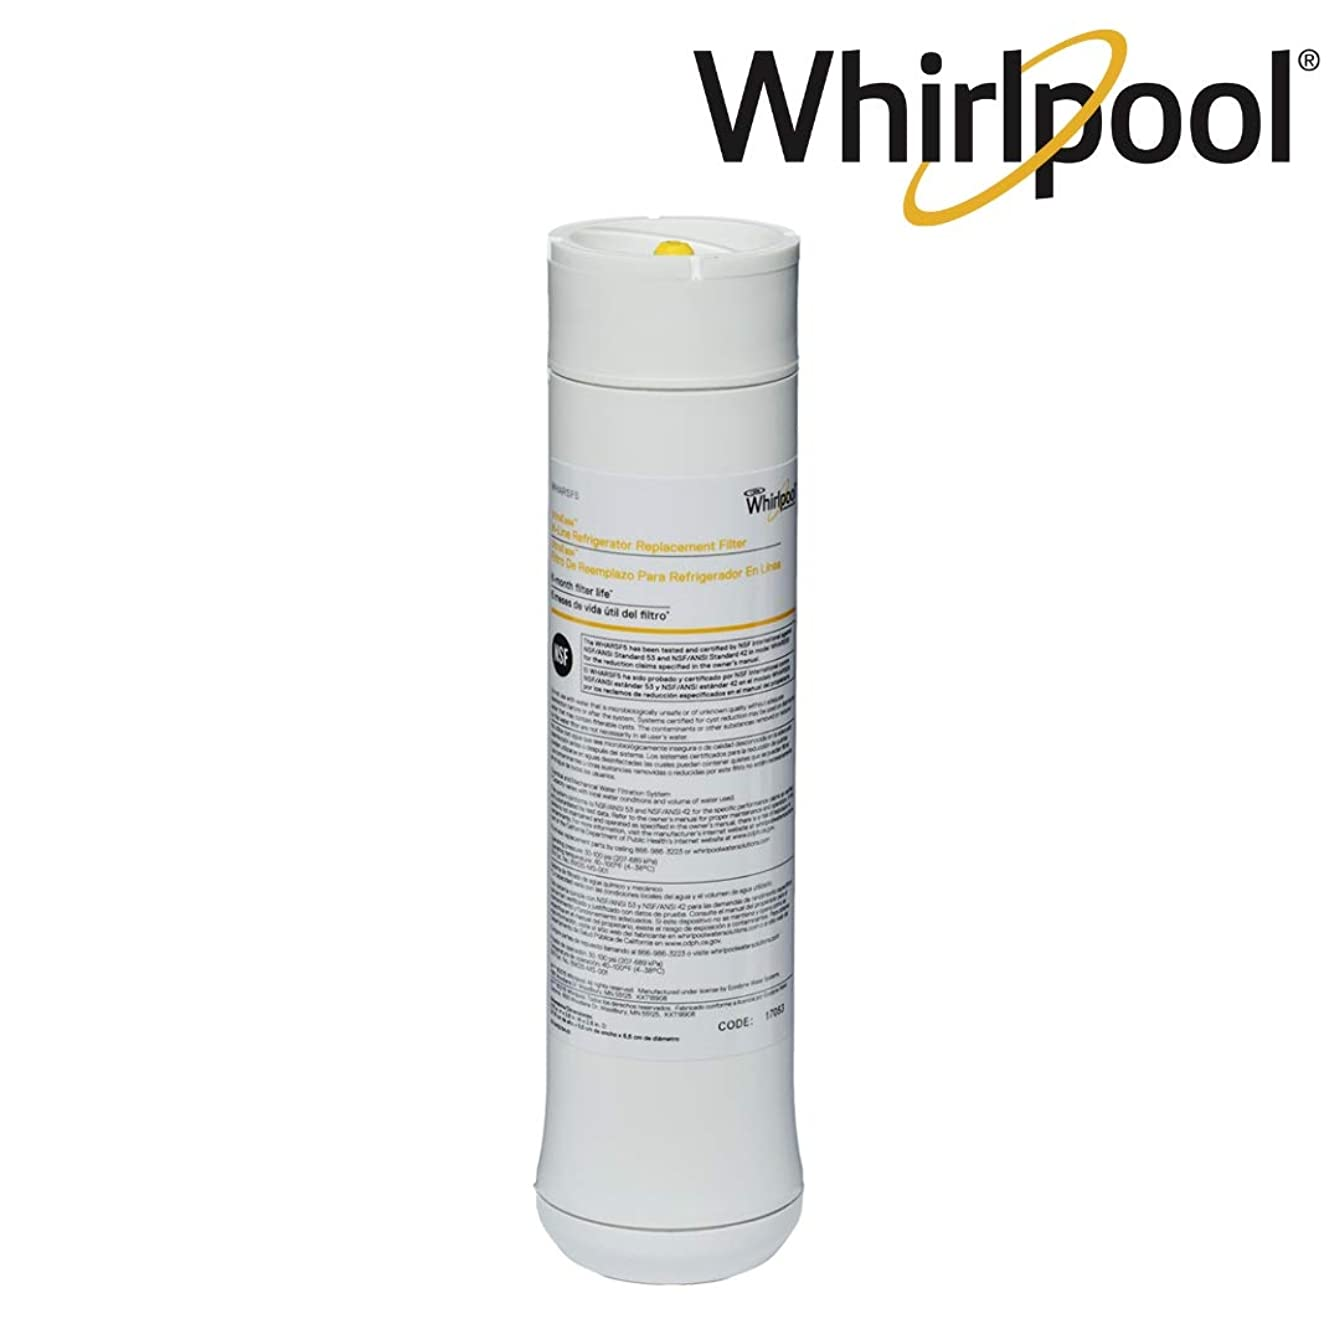 Whirlpool WHARSF5 Water Filter, Bronze